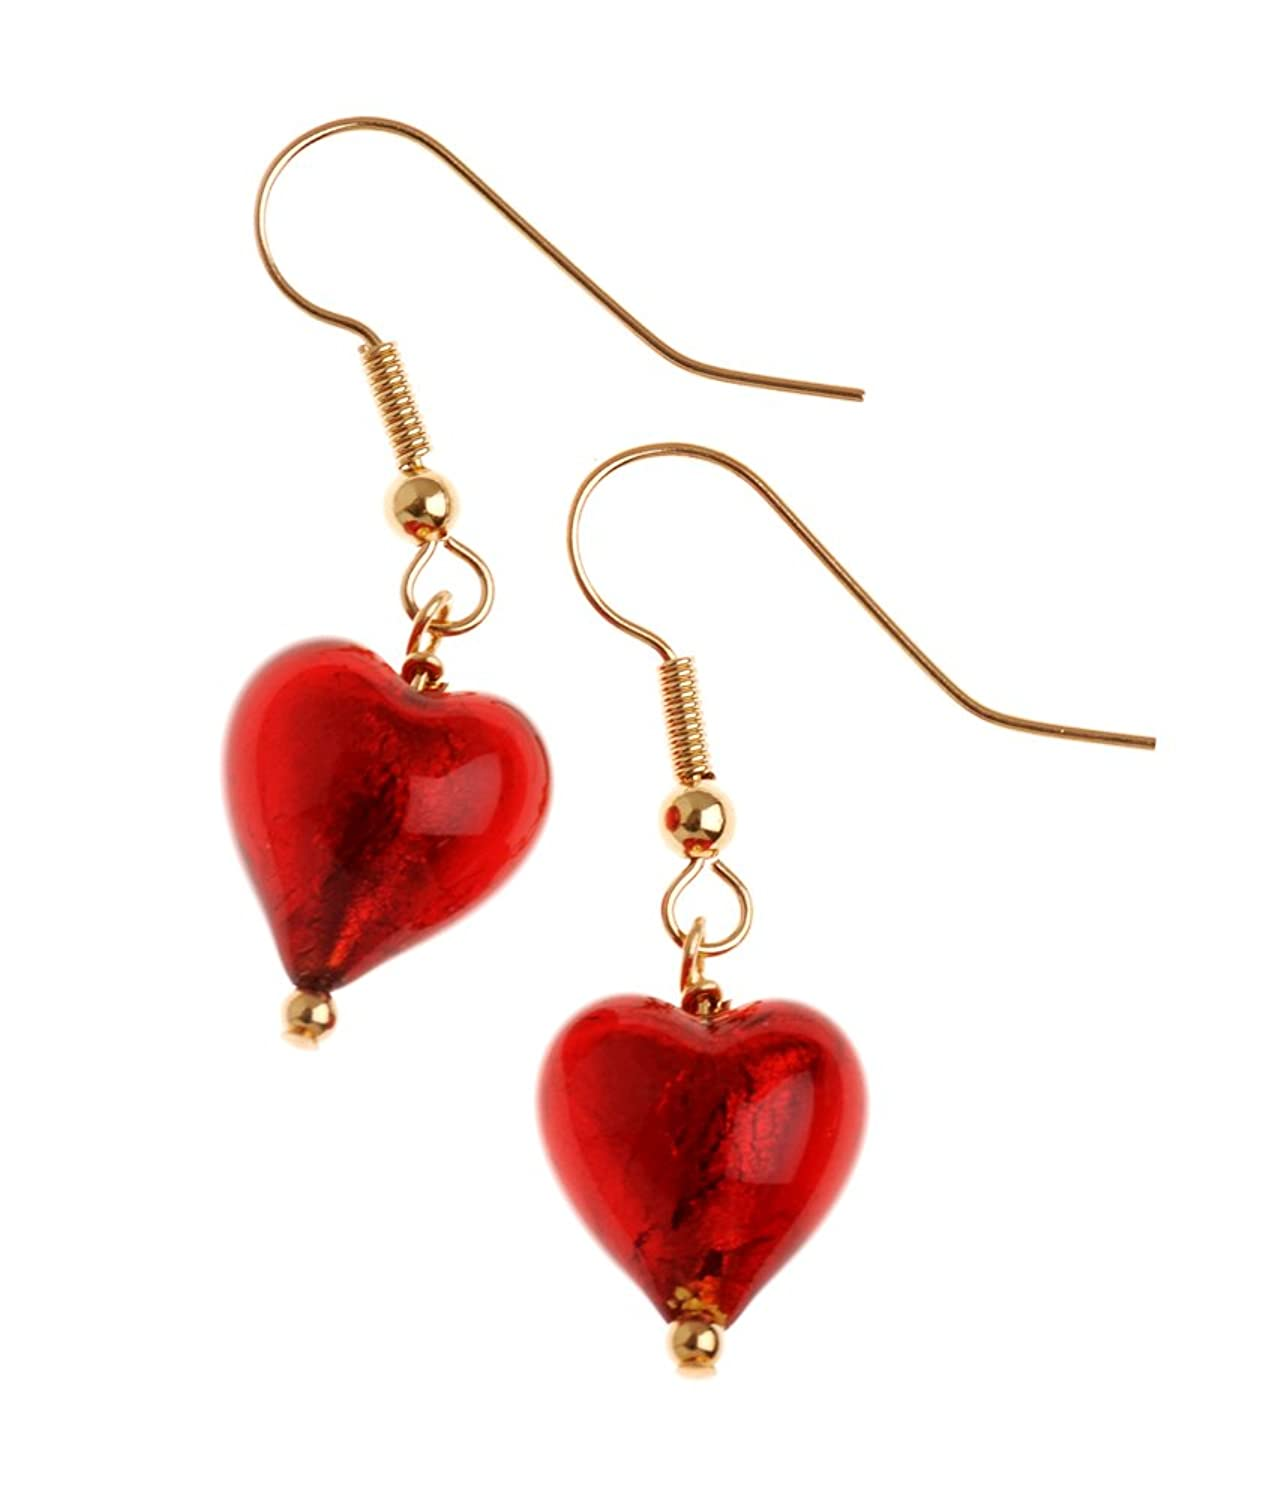 Bellissi Murano Venezia Genuine Murano Glass Red Heart Drop Earrings Of  36cm: Amazon: Jewellery